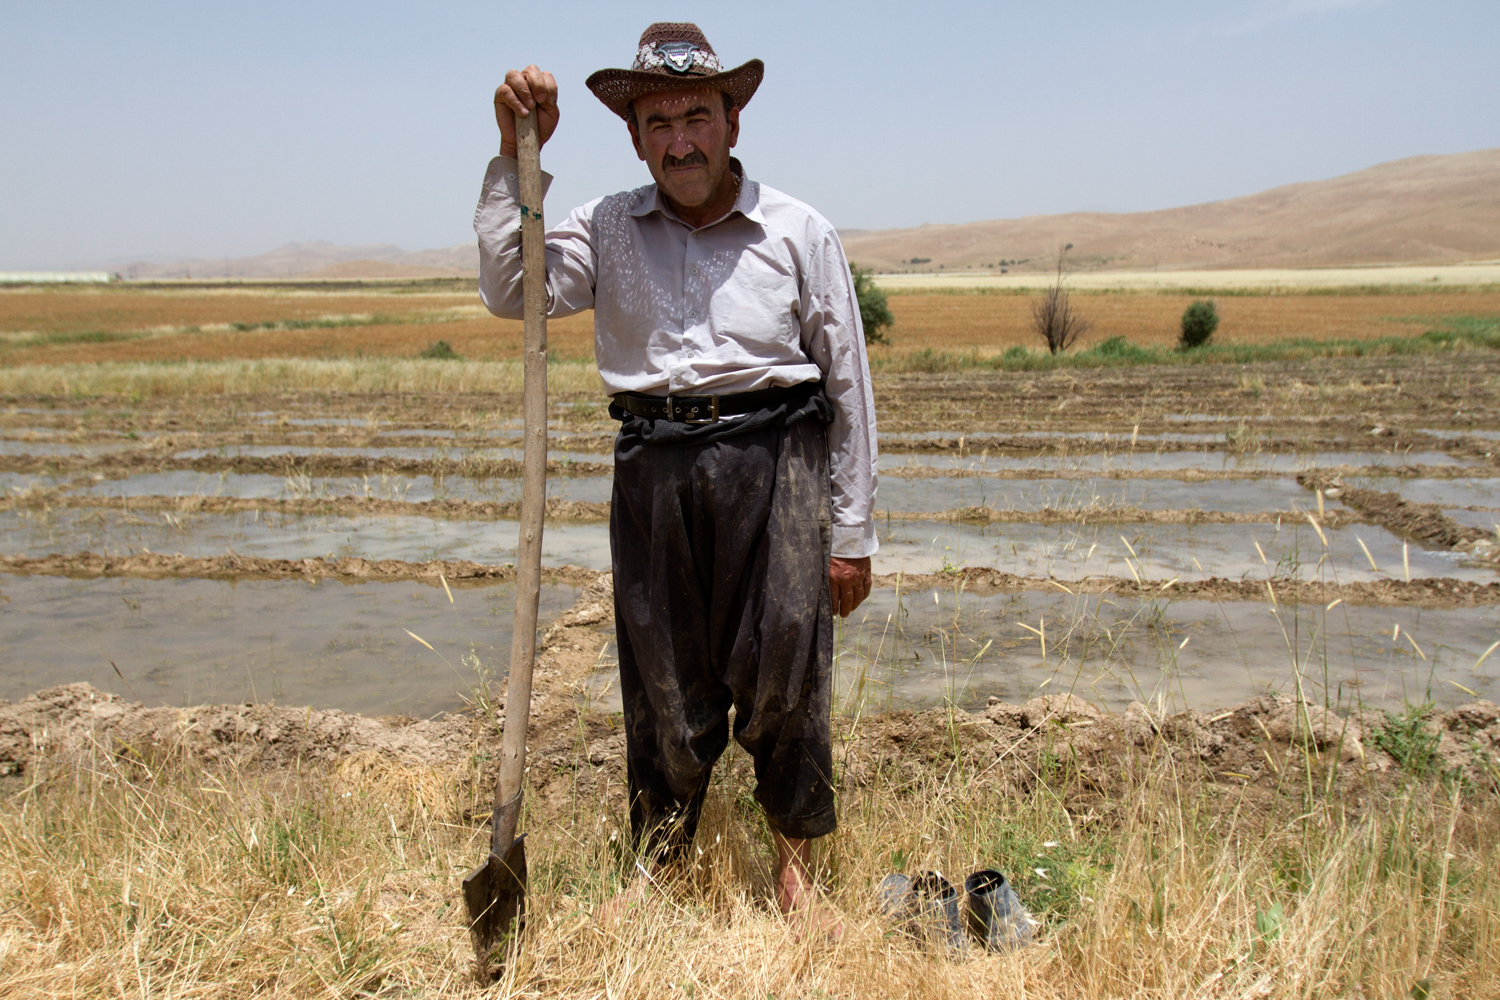 A rice farmer tends paddies in Baziyan to recultivate an heirloom variety of rice called Qush Qaya. The effort is initiated by the First Lady of Iraq, Hero Ibrahim Ahmed Talabani, who remembers the round, nutty rice as one of the many native plants that have disappeared since her childhood. Baziyan was once a prolific rice region; now the land is dry and varieties are extinct.